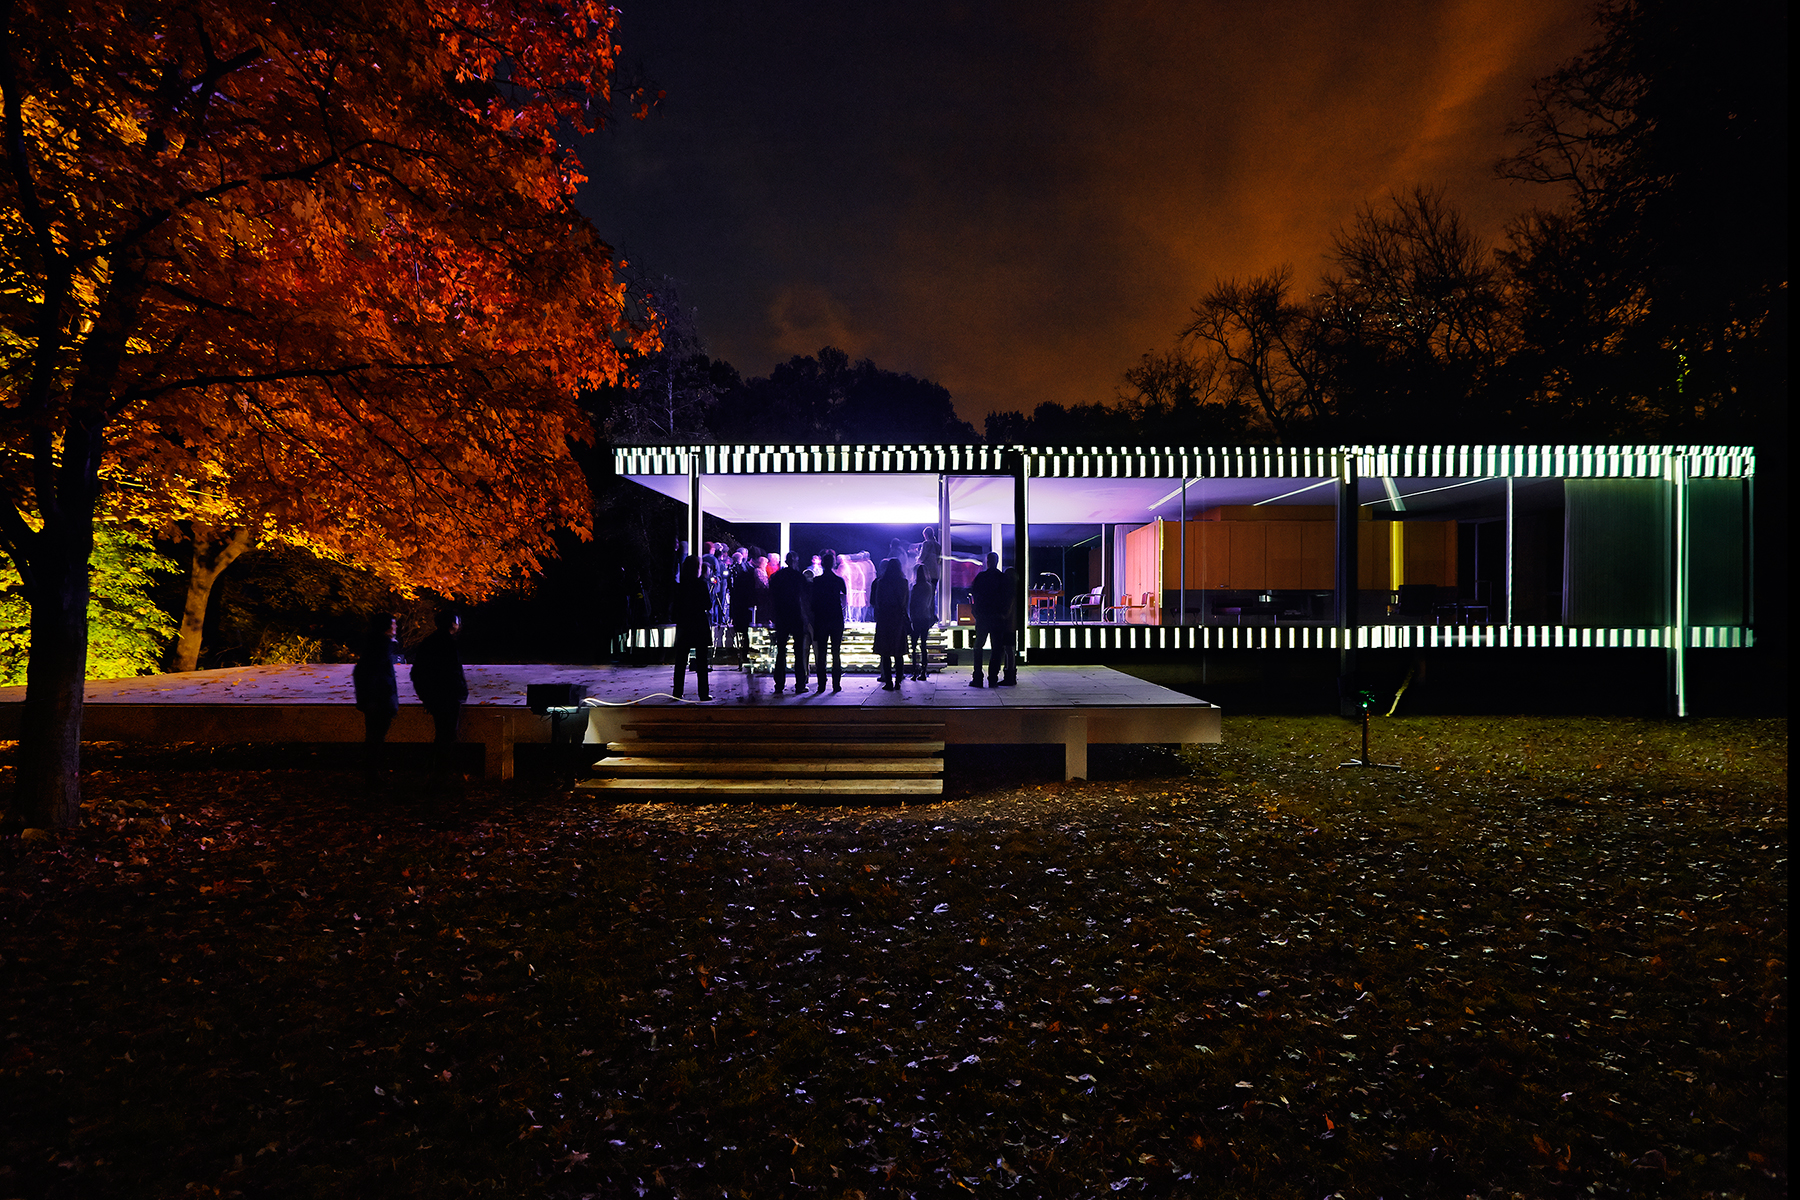 Mies van der rohe 39 s iconic farnsworth house gets the for The farnsworth